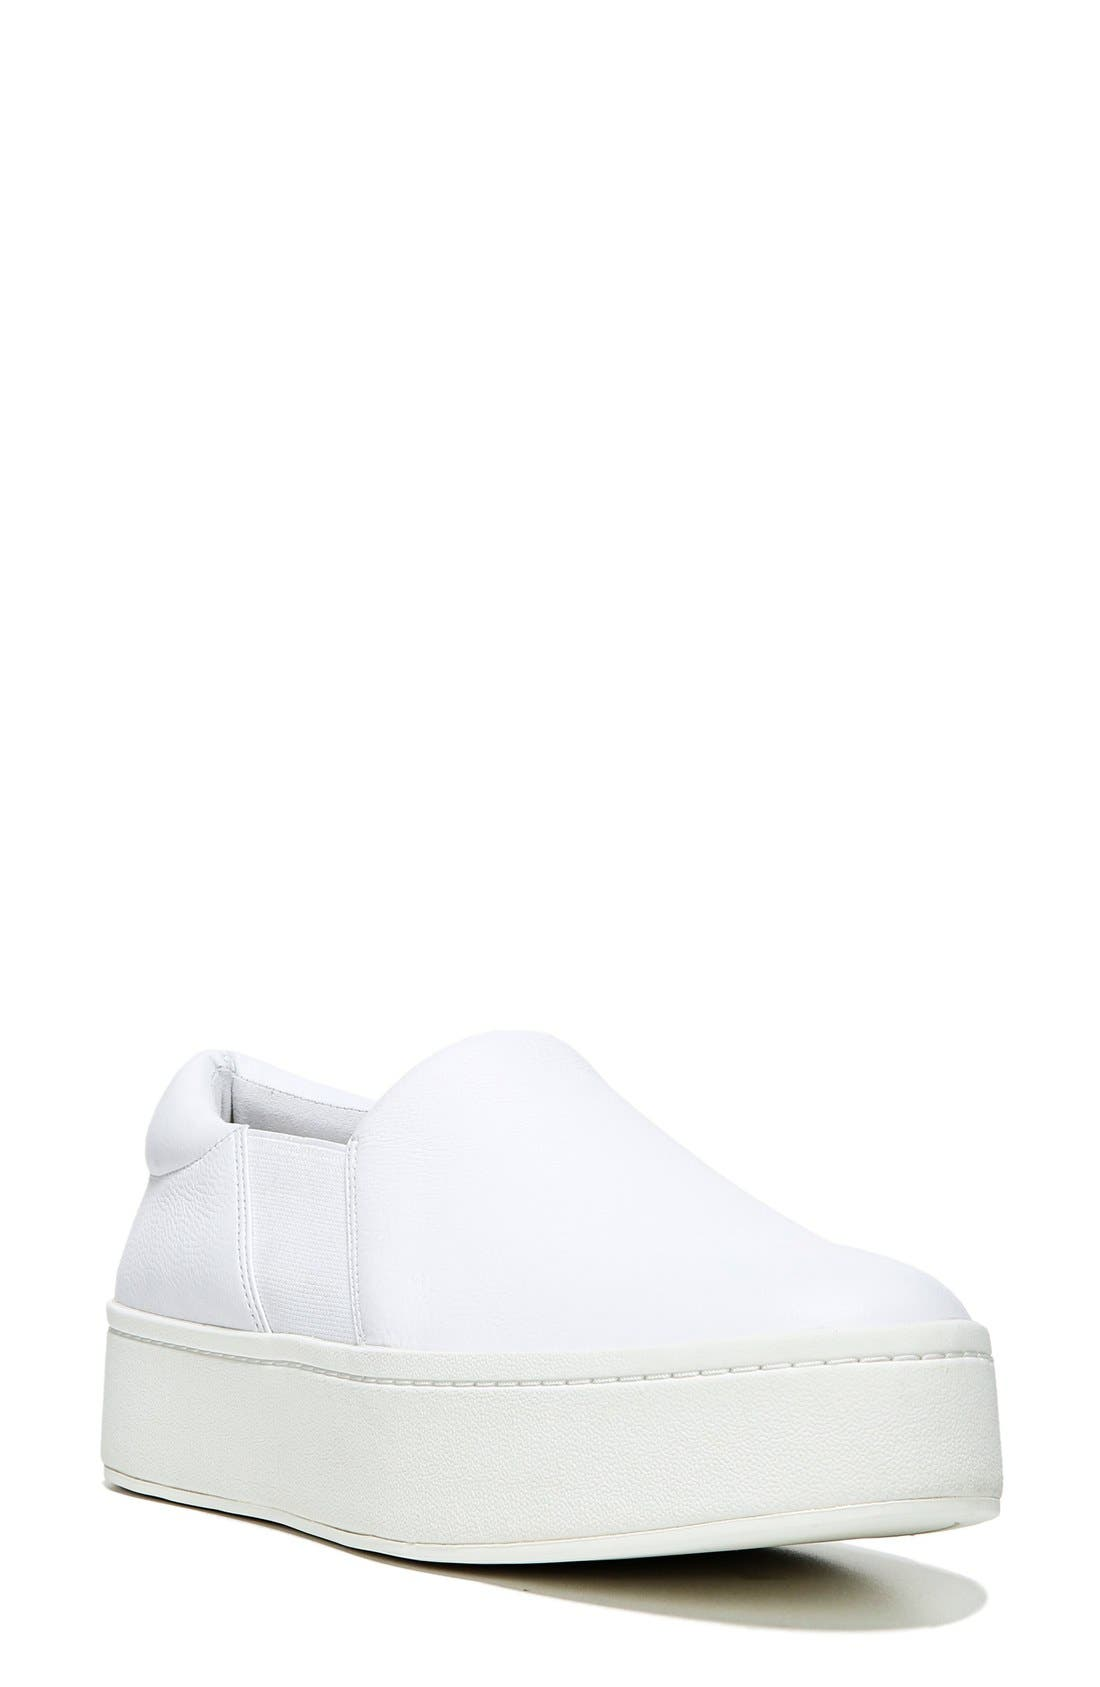 VINCE, Warren Slip-On Sneaker, Main thumbnail 1, color, PLASTER LEATHER